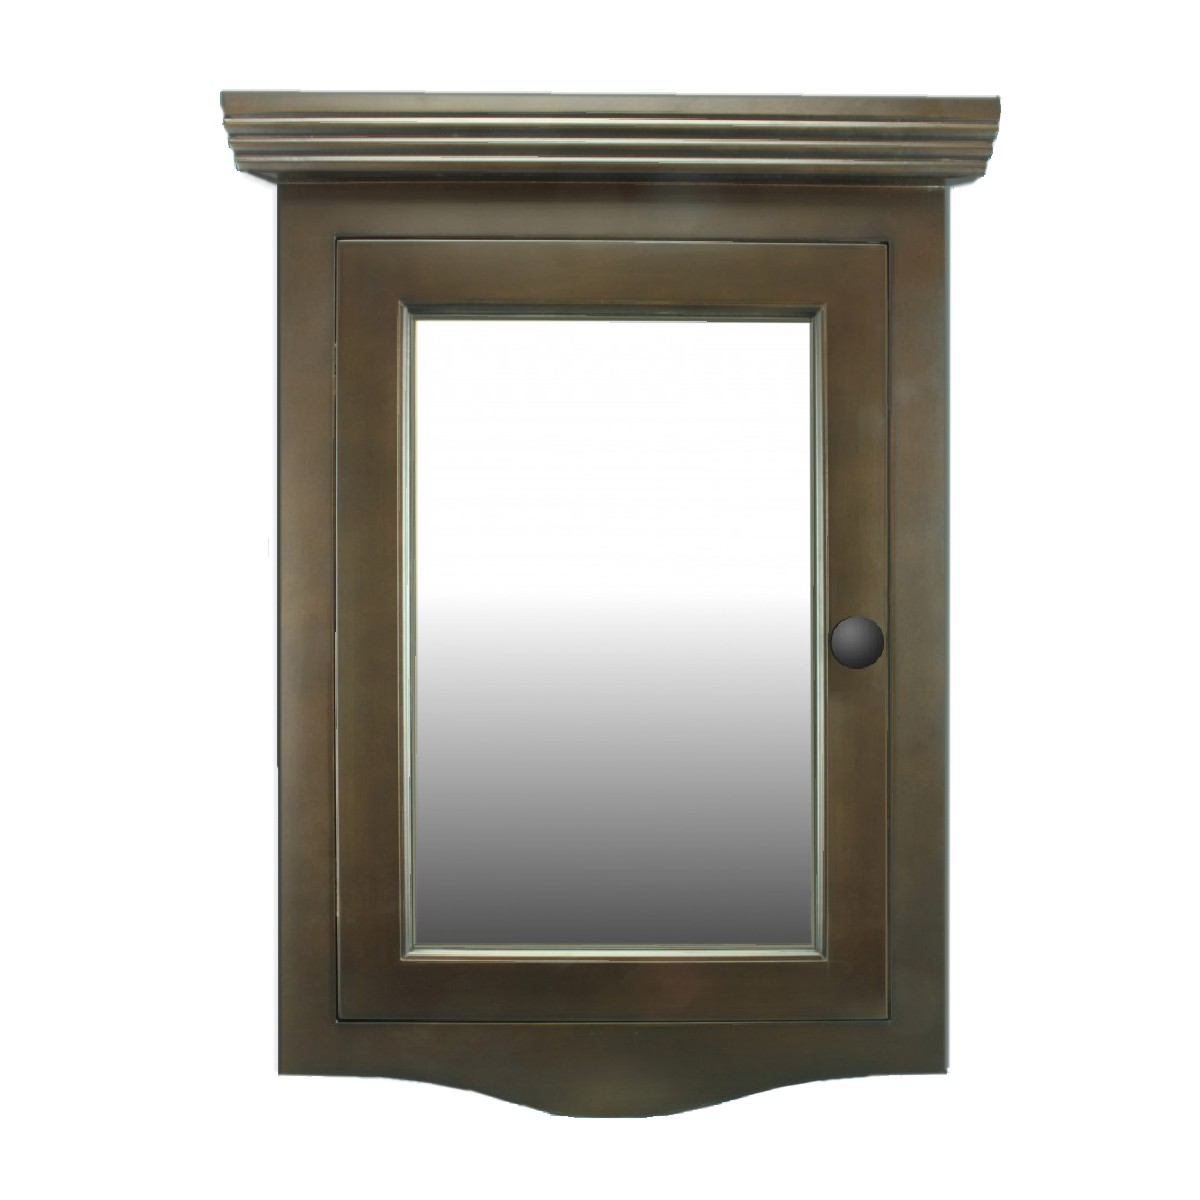 ... U003cPREu003eDark Oak Wall Mount Medicine Cabinet Corner With Mirror ...